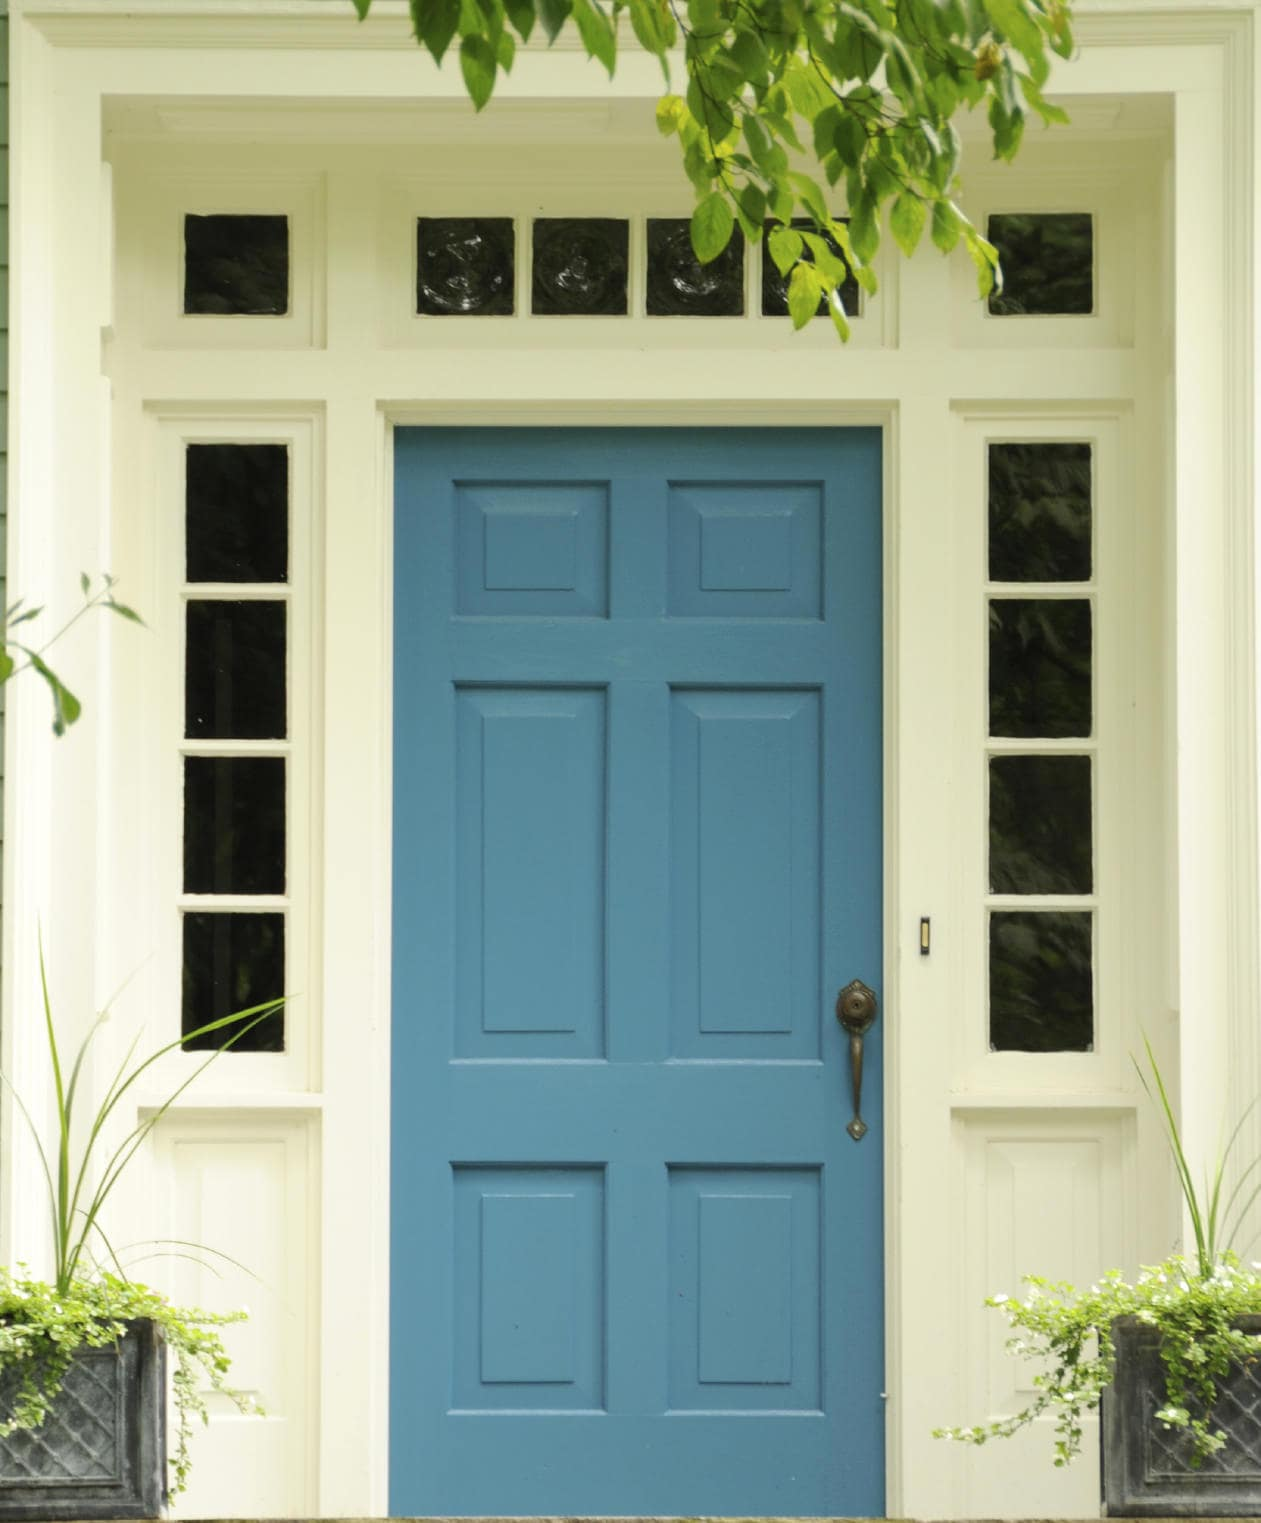 Small glass panels surround a blue front door that's fitted with a bronze handle and knob. It stands out against the white walls with hints of green plants.